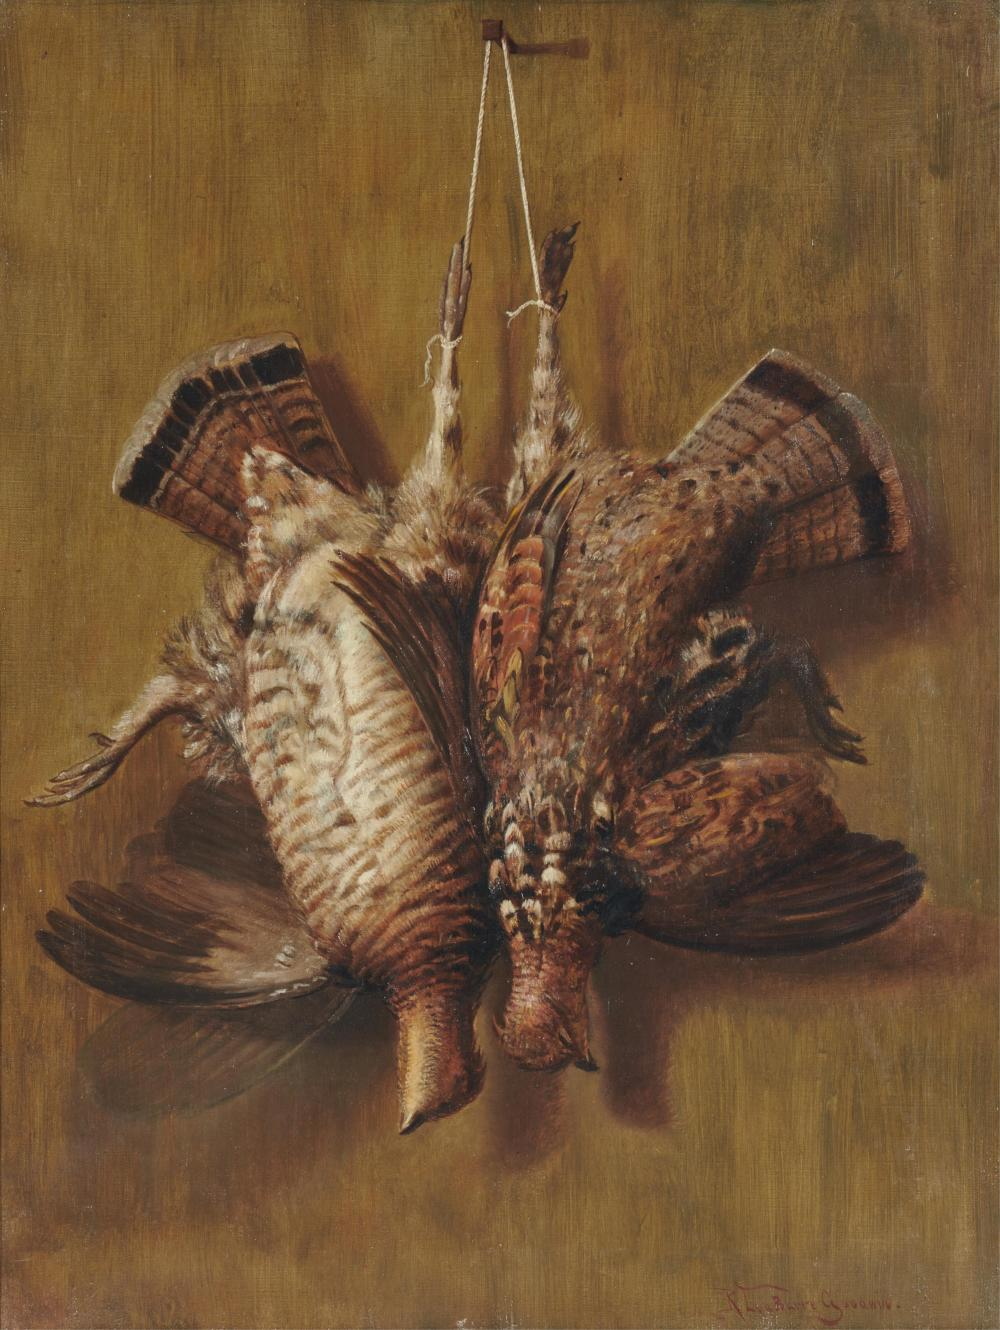 RICHARD LABARRE GOODWIN, (American, 1840-1910), Hanging Grouse, oil on canvas, 26 x 20 in., frame: 29 1/2 x 23 1/2 in.